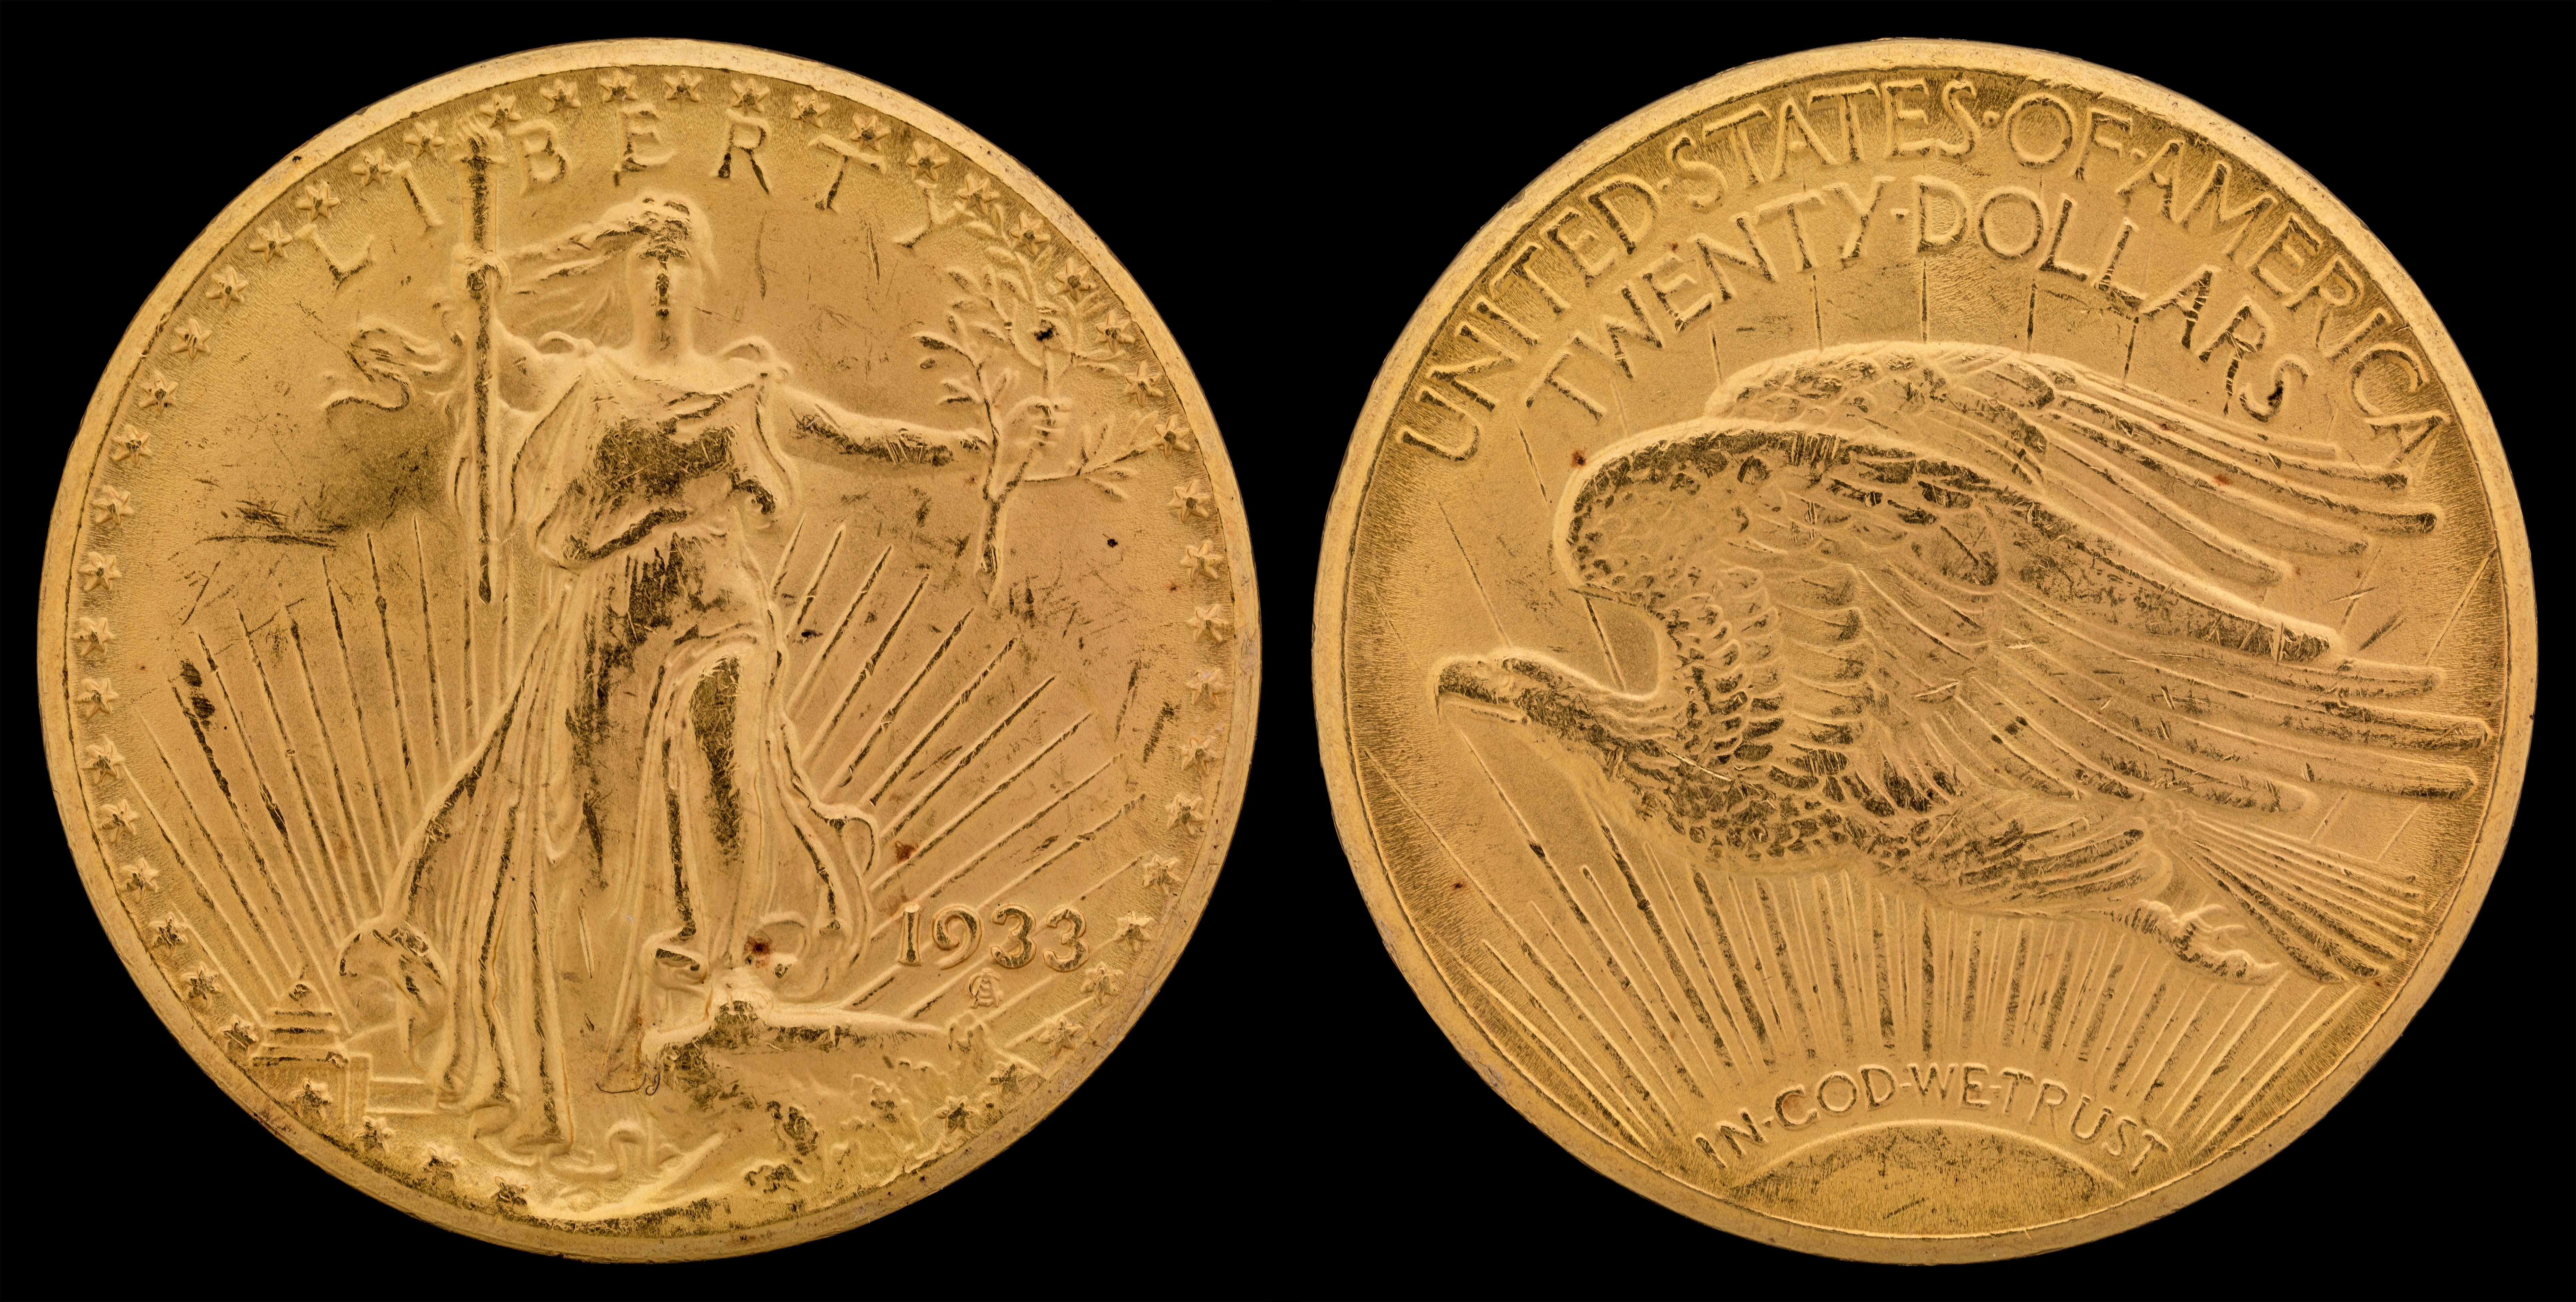 main image for US Mint Legal Representative Will Exhibit 1933 Gold $20 Double Eagle, Discuss Litigation Issues at Pennsylvania Coin Show